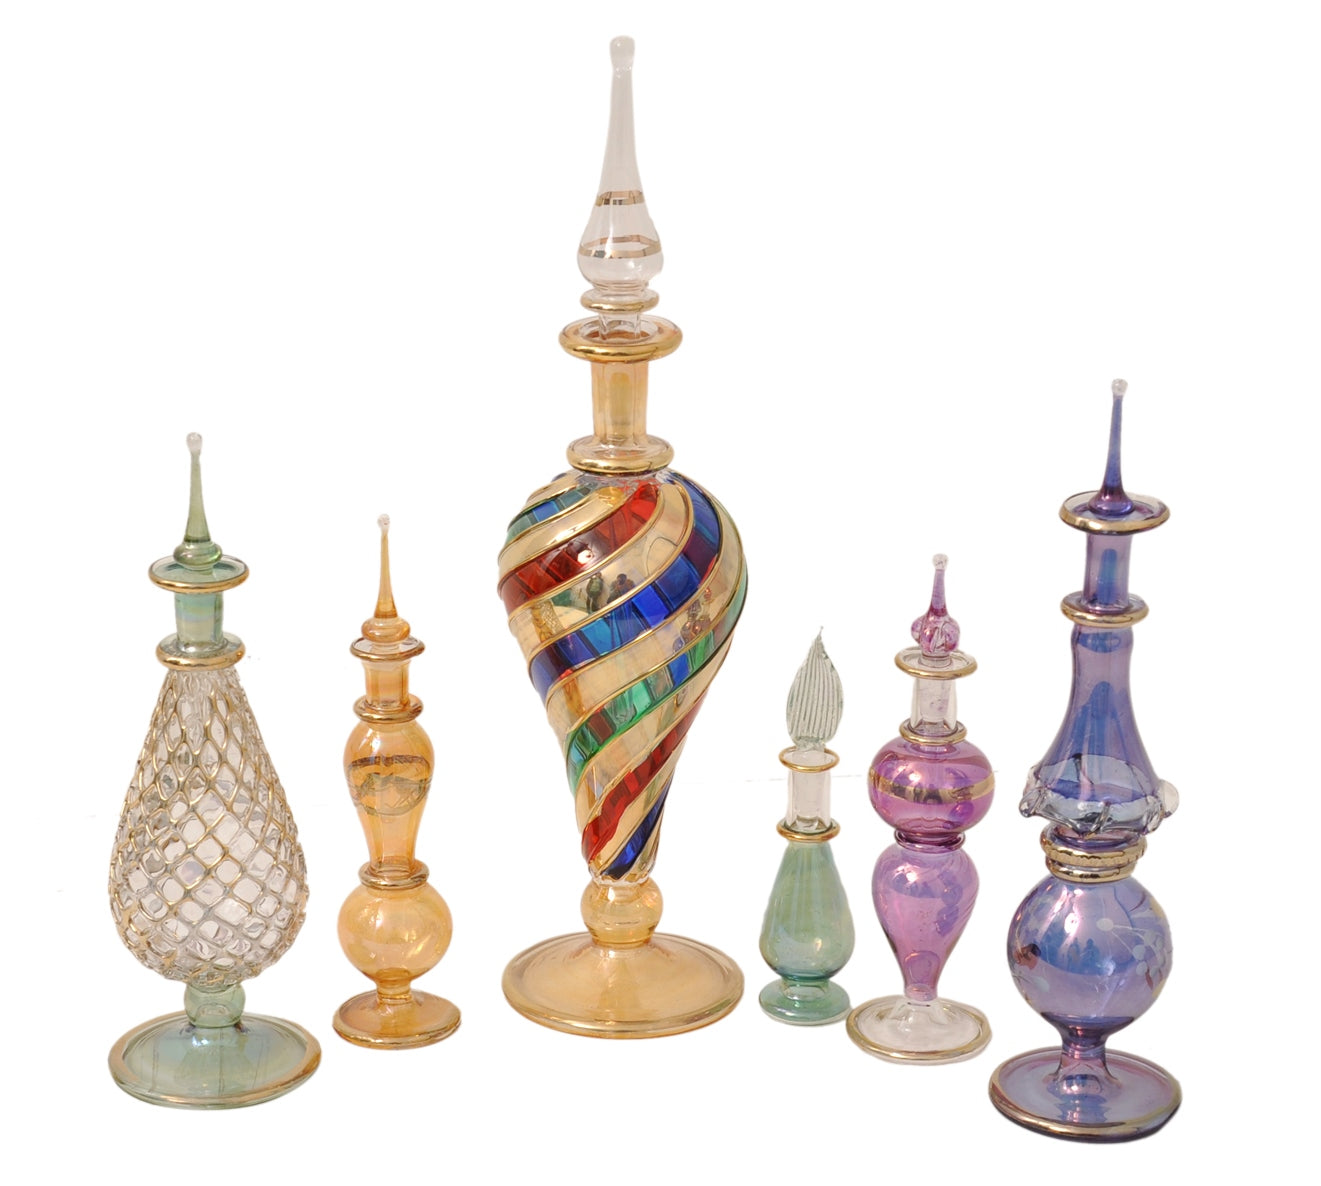 Genie Blown Glass Potion potions decorative miniature decorative Egyptian Perfume bottles Mix set of 6pc by CraftsOfEgypt